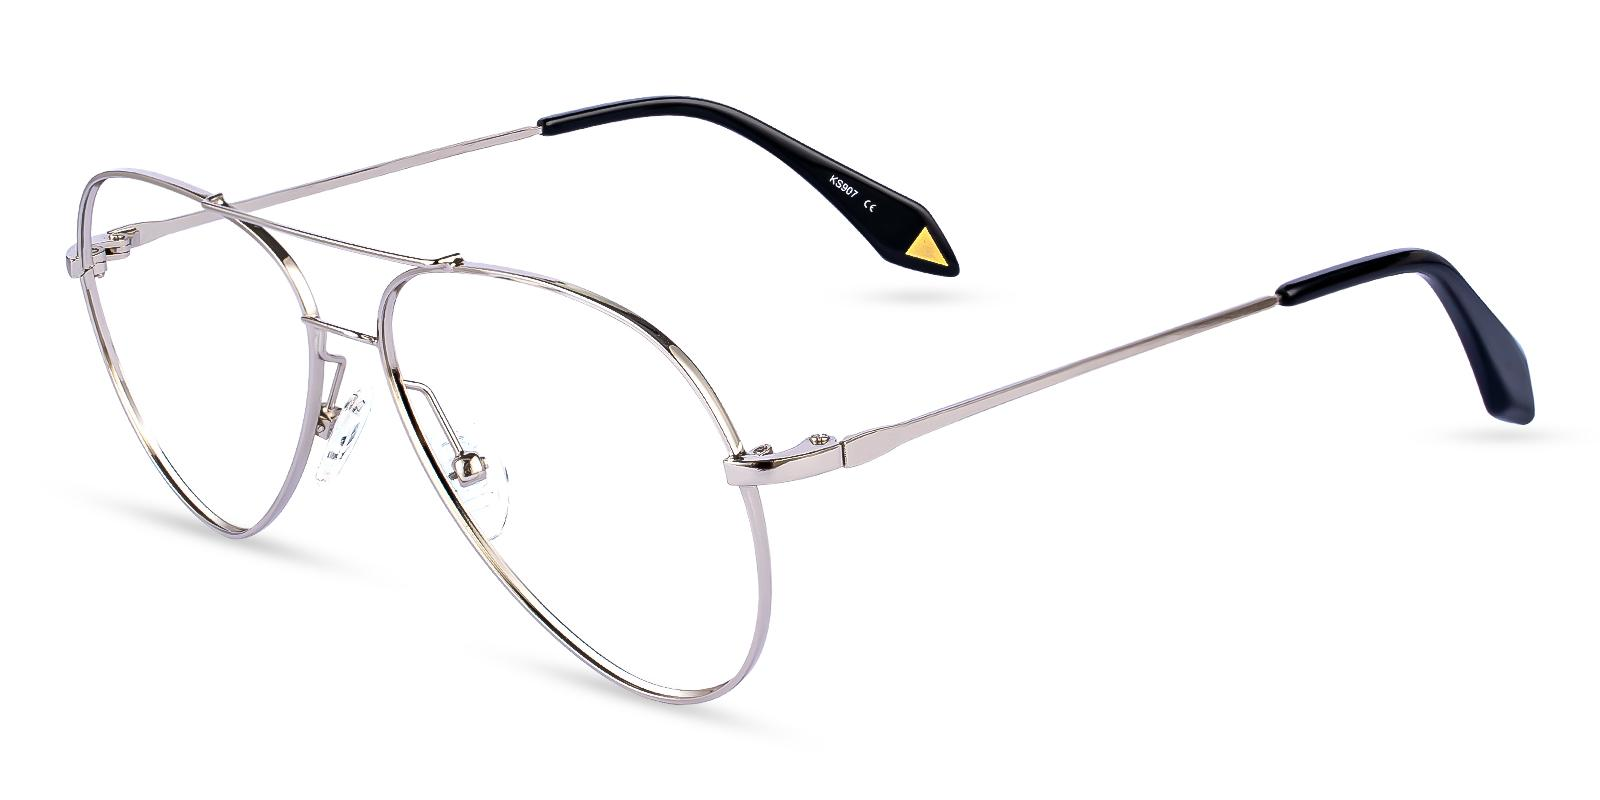 Malawi Silver Metal Eyeglasses , NosePads Frames from ABBE Glasses